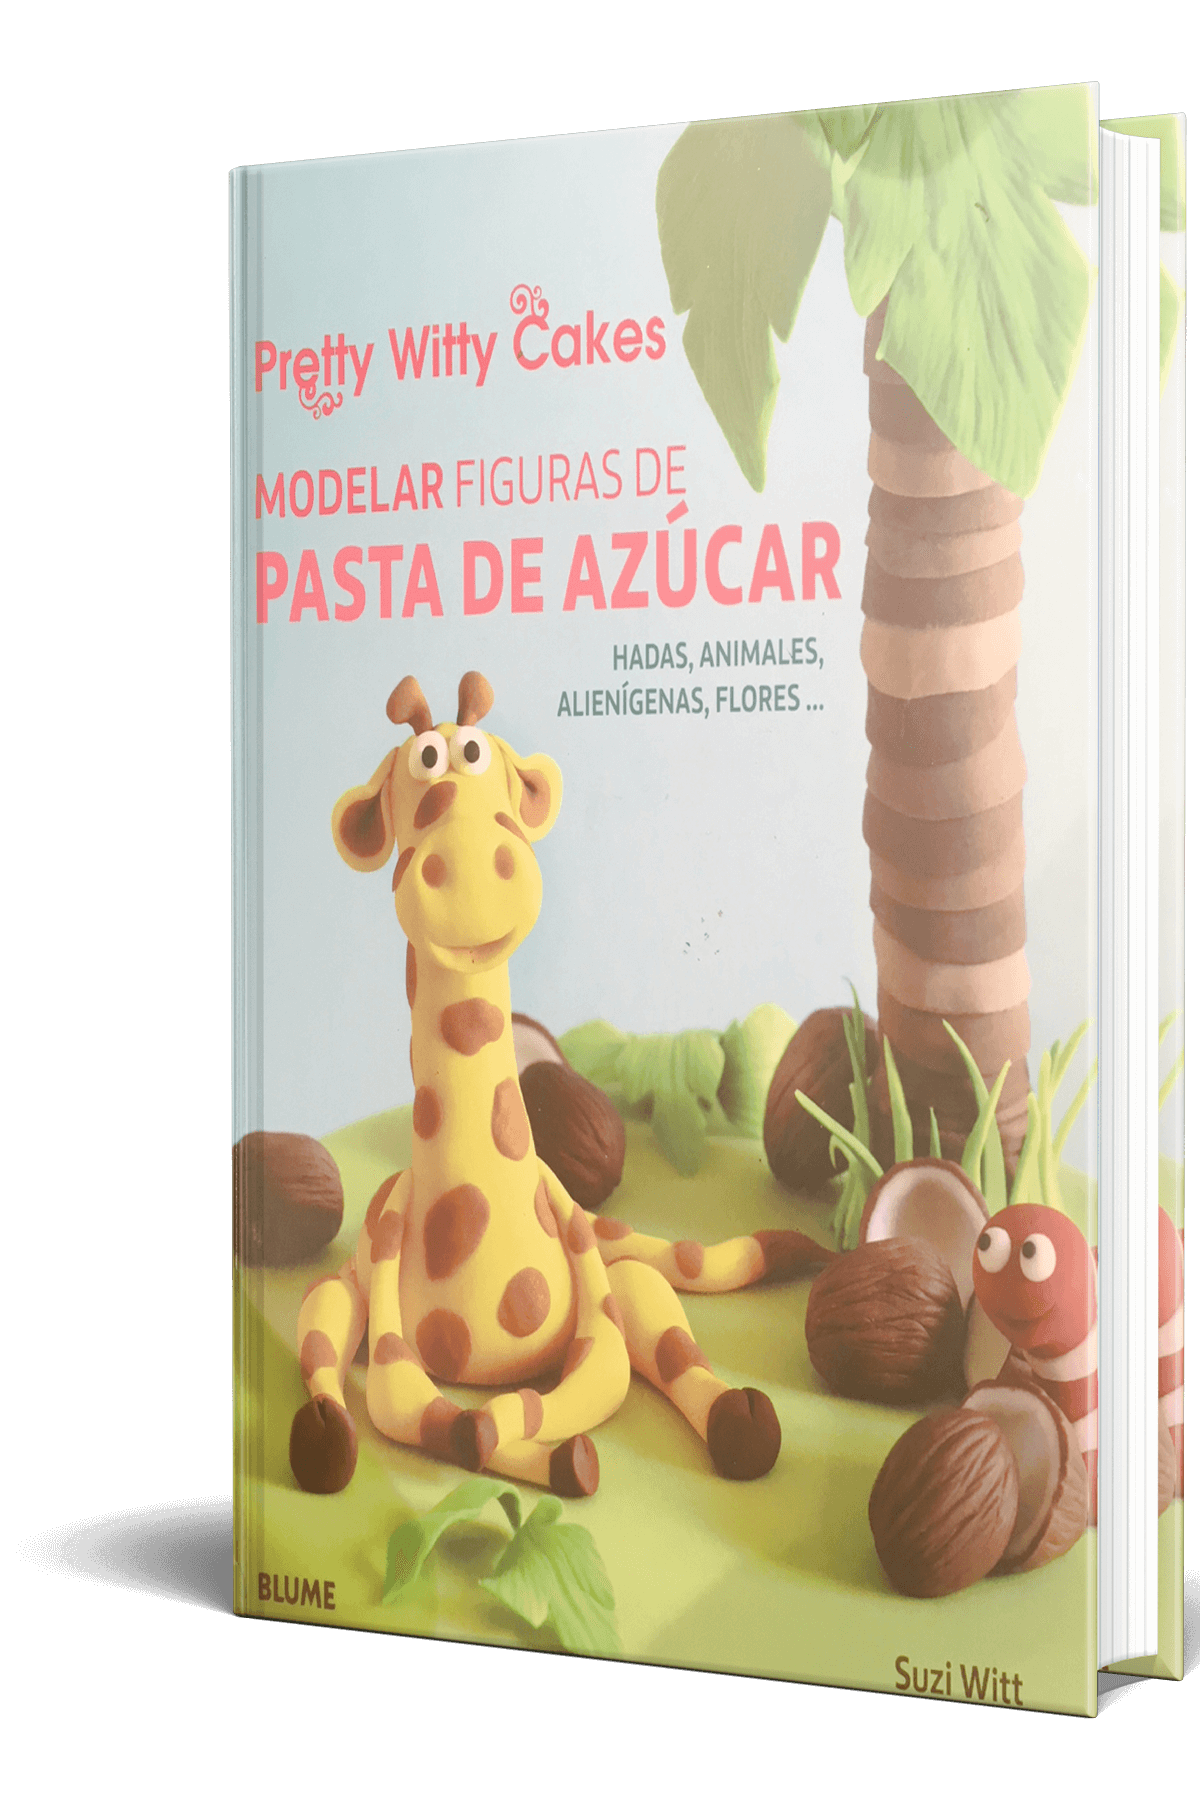 Pretty Witty Cakes and Suzi Witt Book cover SPanish Version